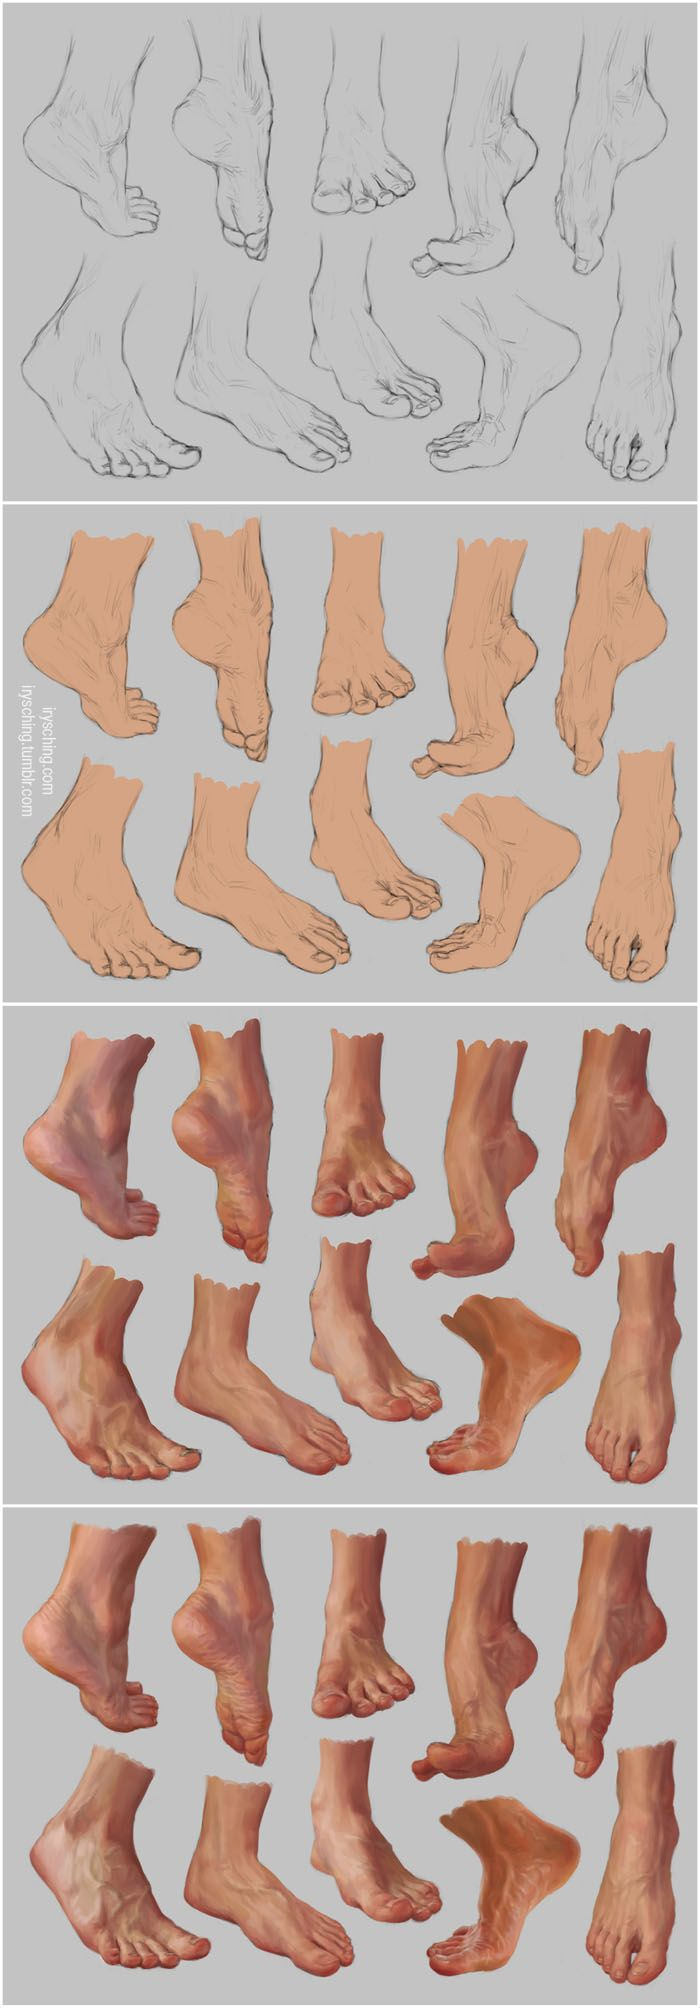 Feet Study 2 Steps by ~irysching on deviantART join us http://pinterest.com/koztar/cg-anatomy-tutorials-for-artists/